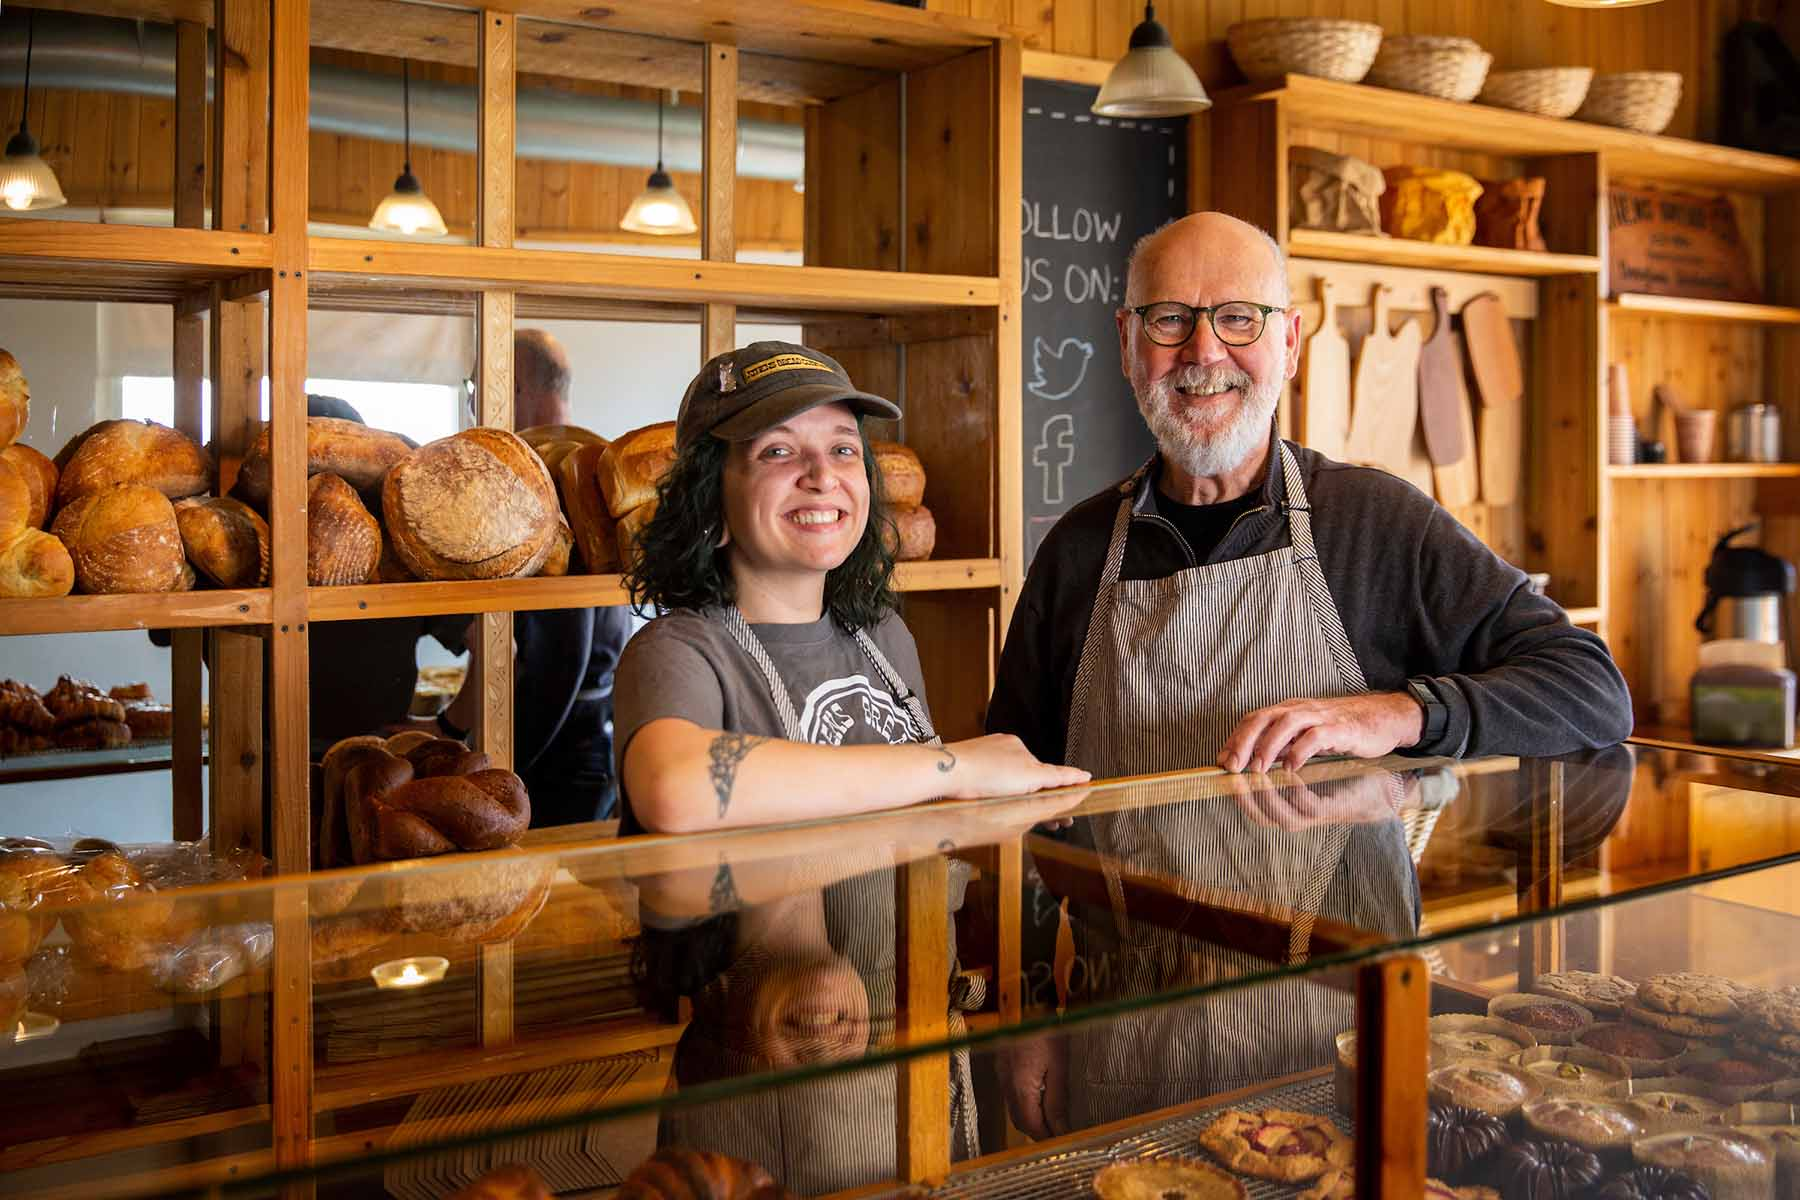 Photographs of baked goods, staff and the environment at Athens Bread Company in Athens, Ohio on March 19, 2019